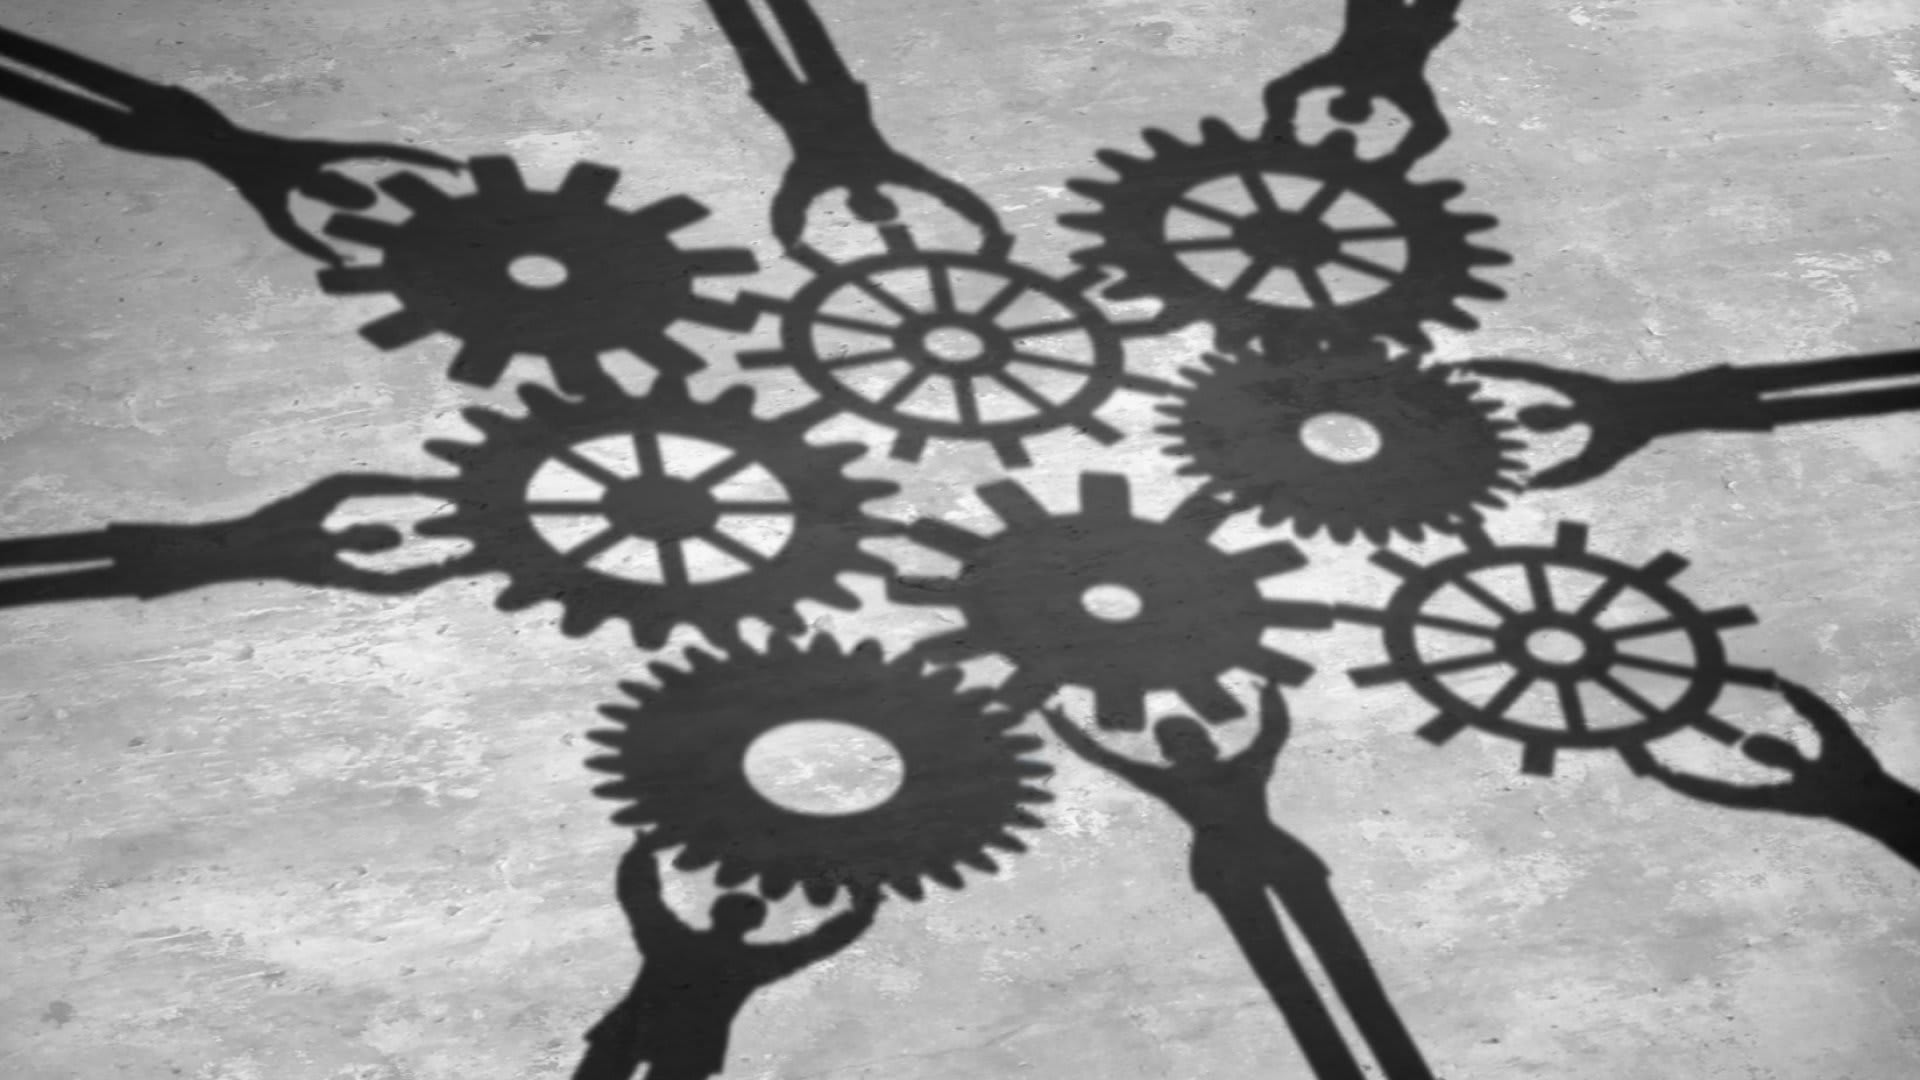 Culture change is not a screw-on job